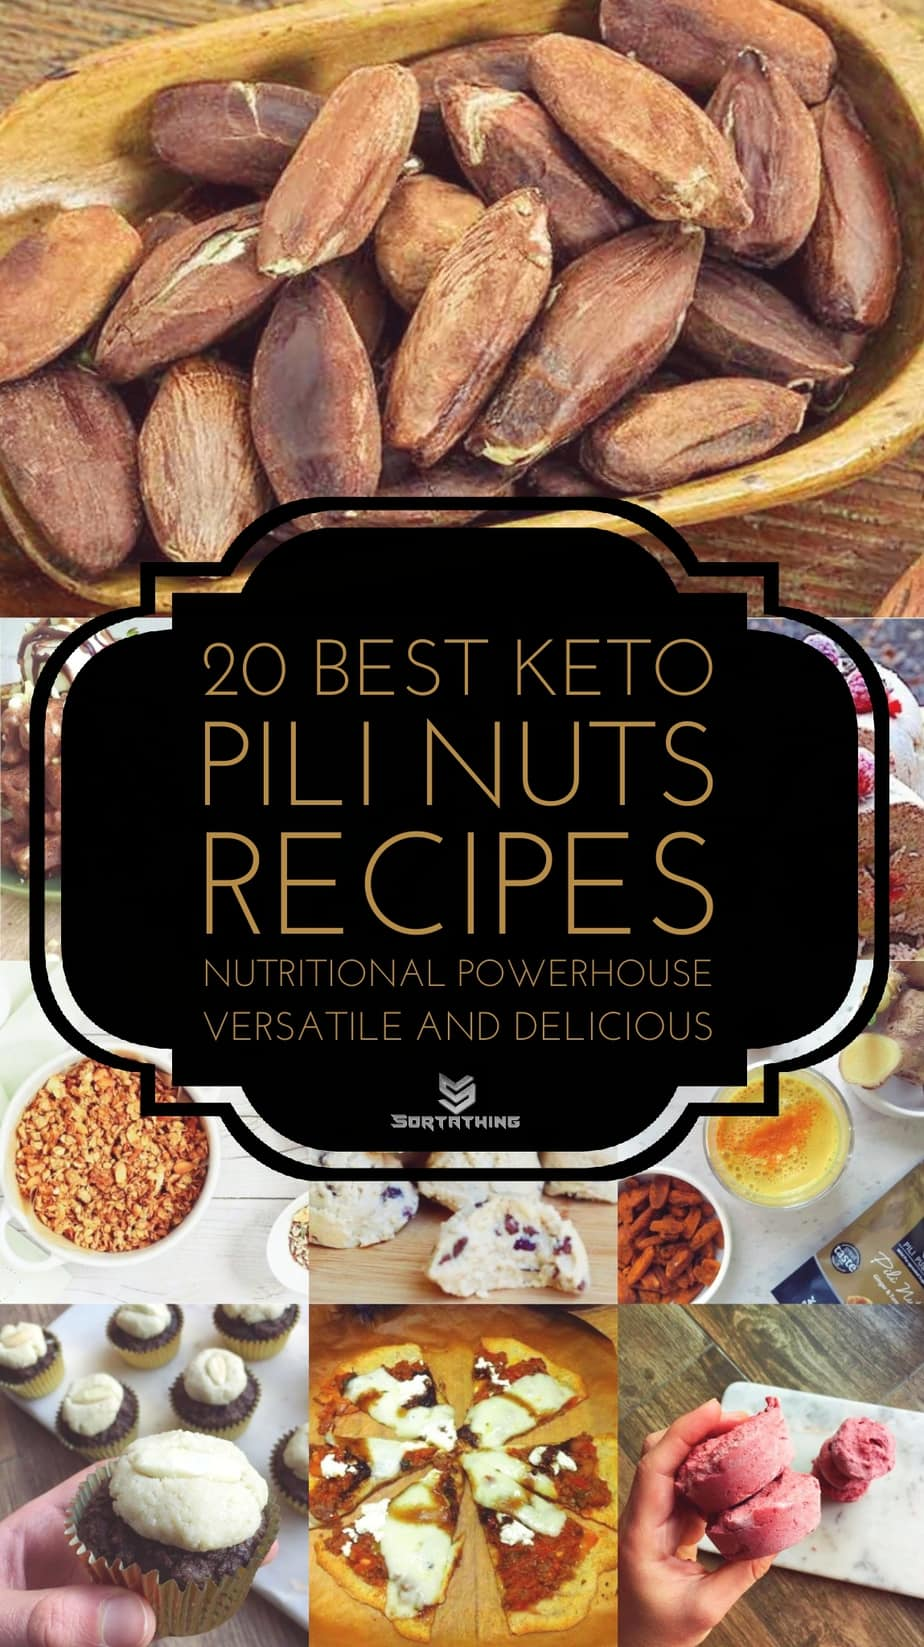 20 Best Keto Pili Nuts Recipes